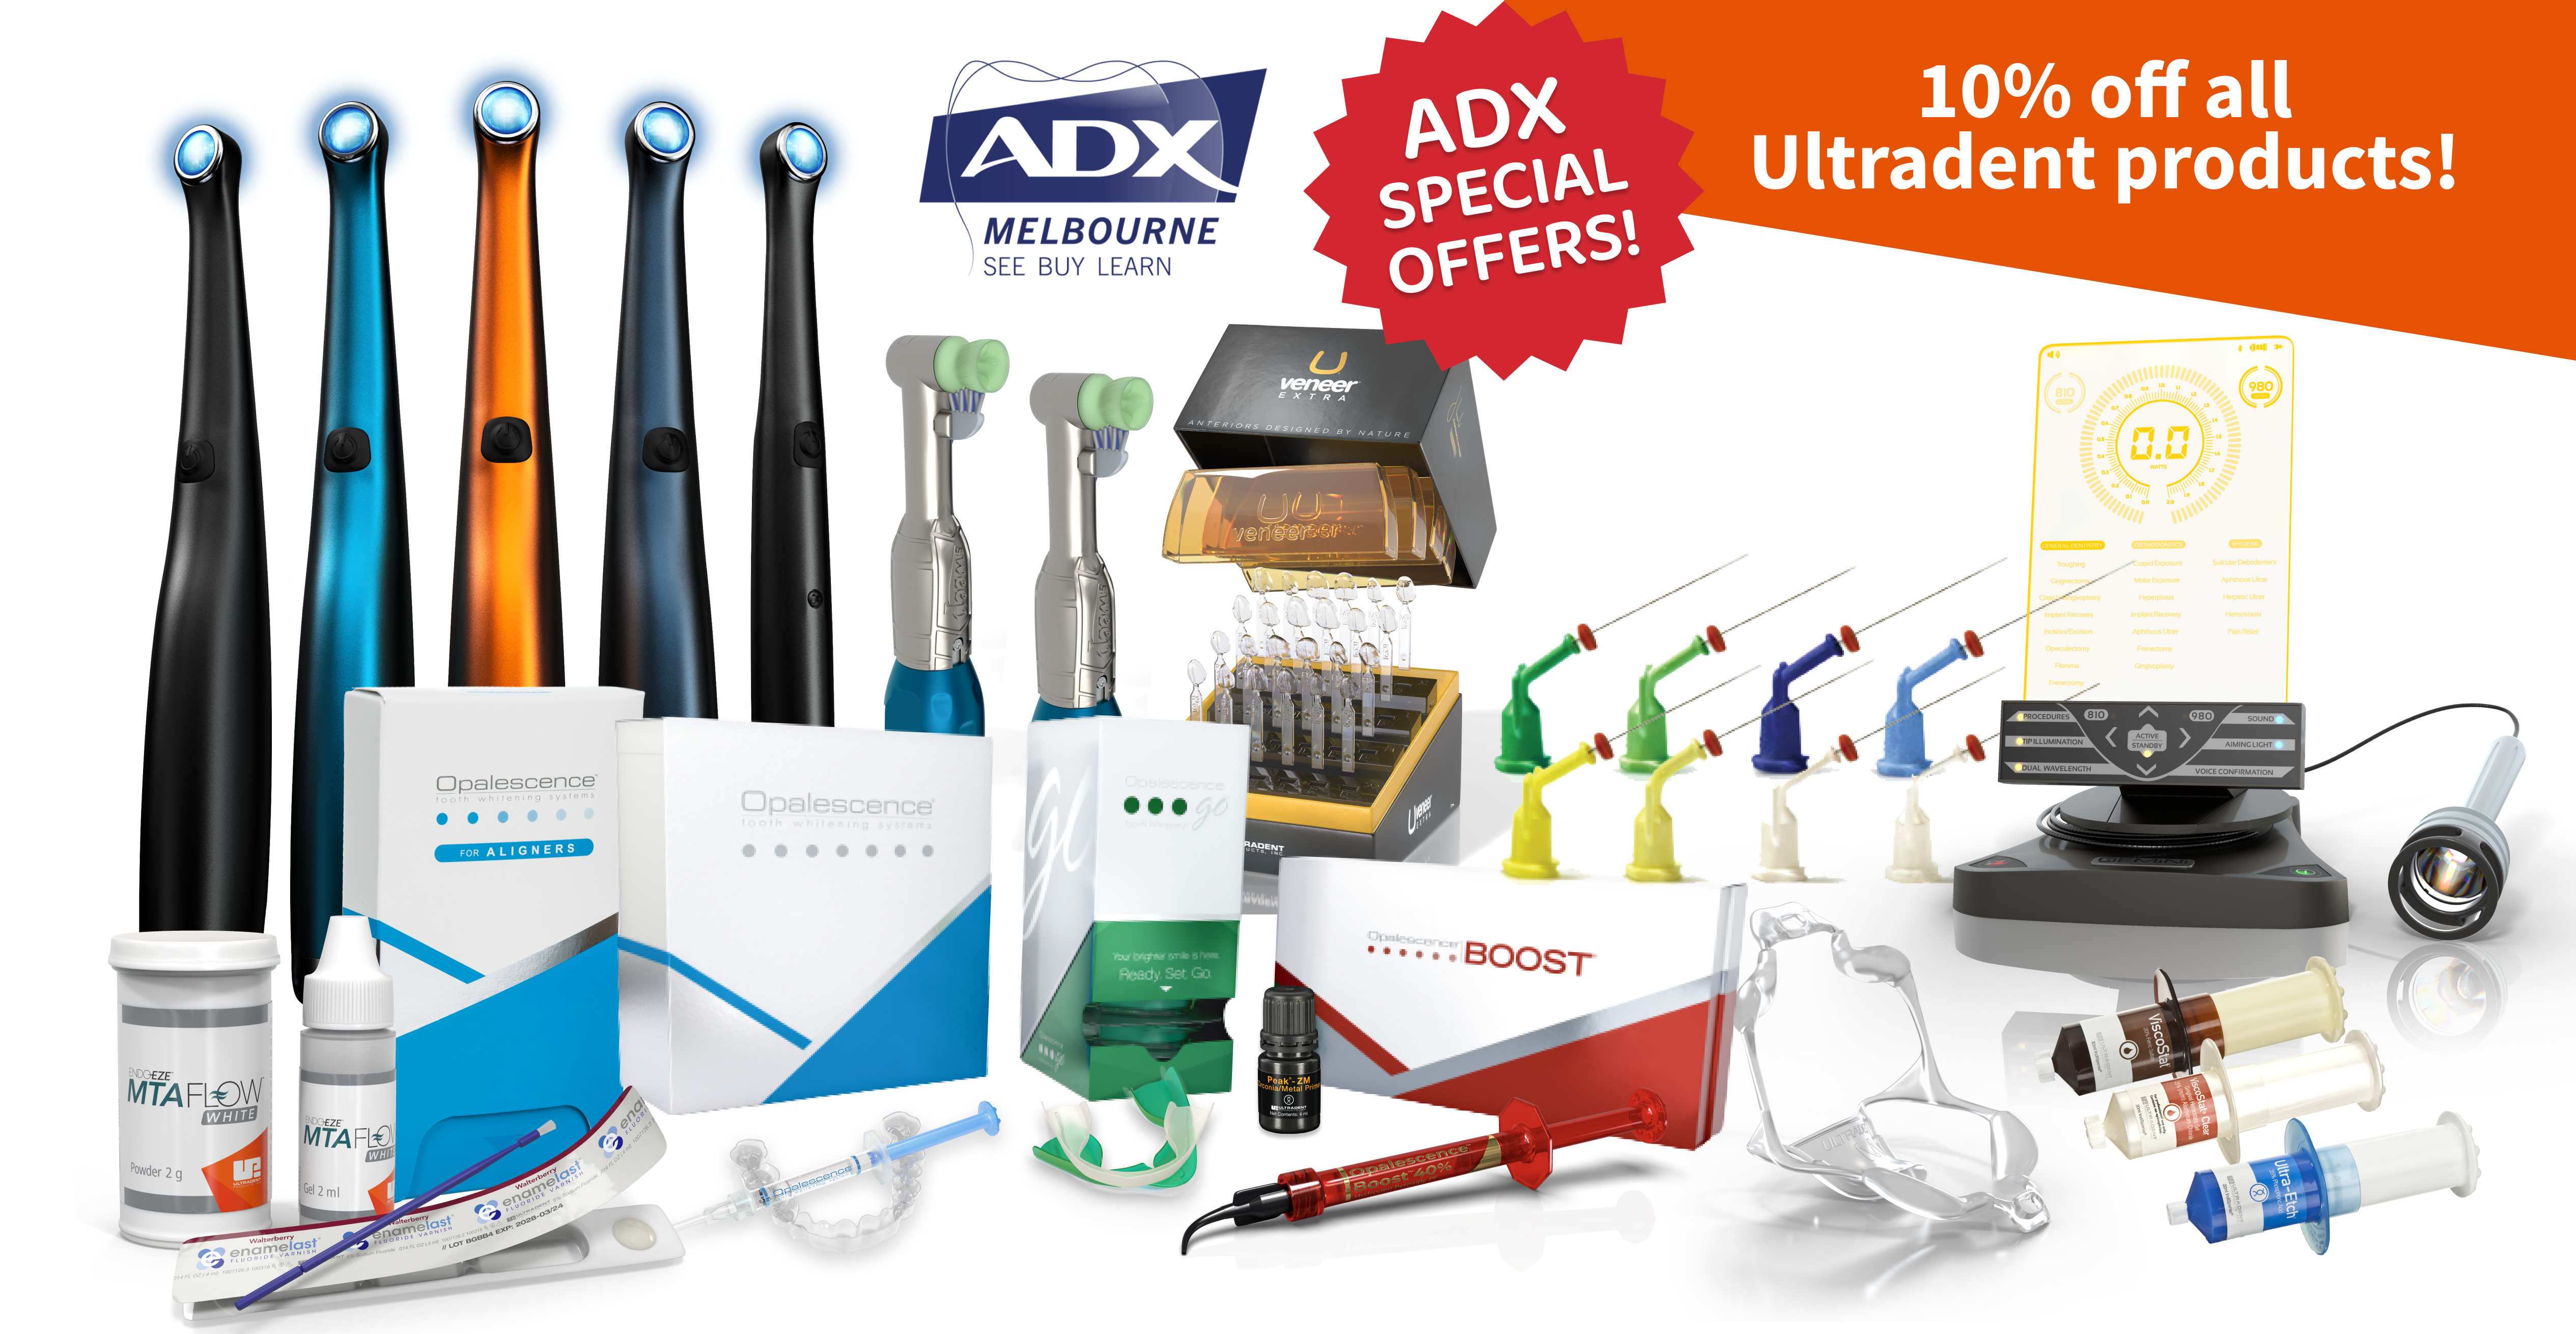 ADX Special Offers